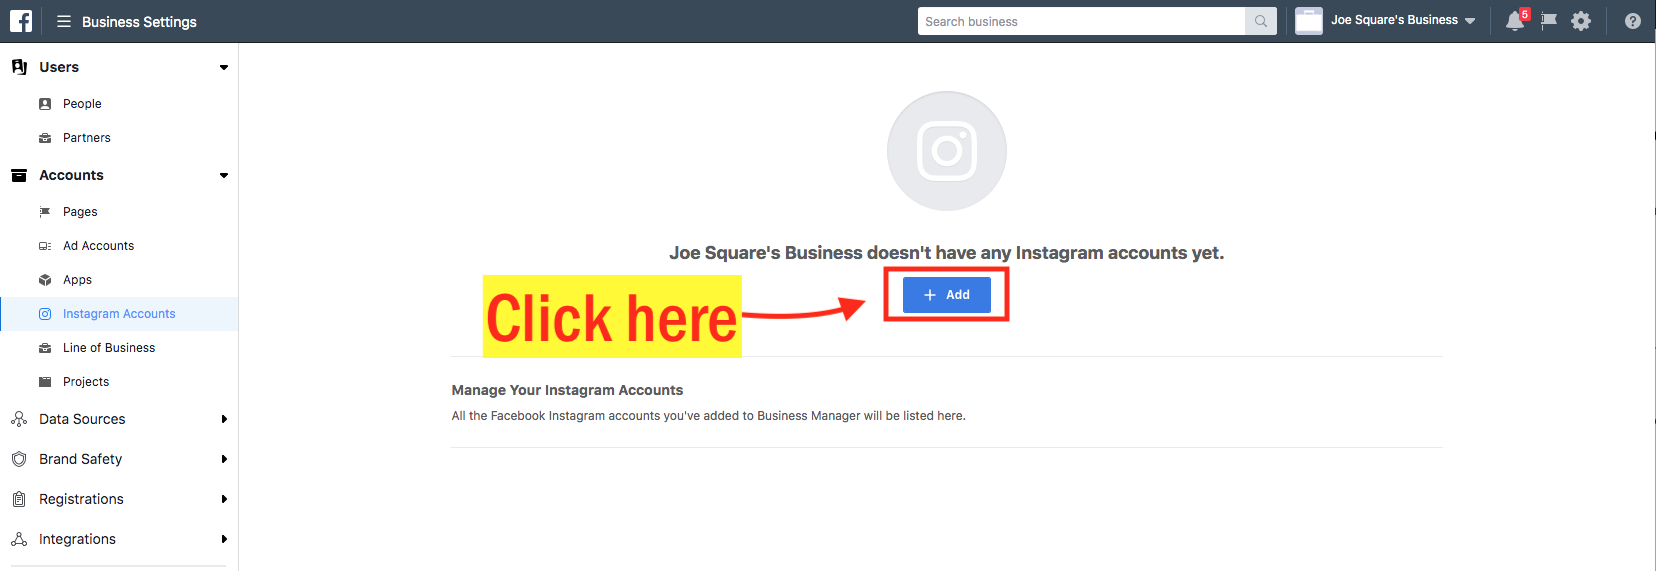 Assign an Instagram Account to an Facebook Ad Account Step 4 Screenshot